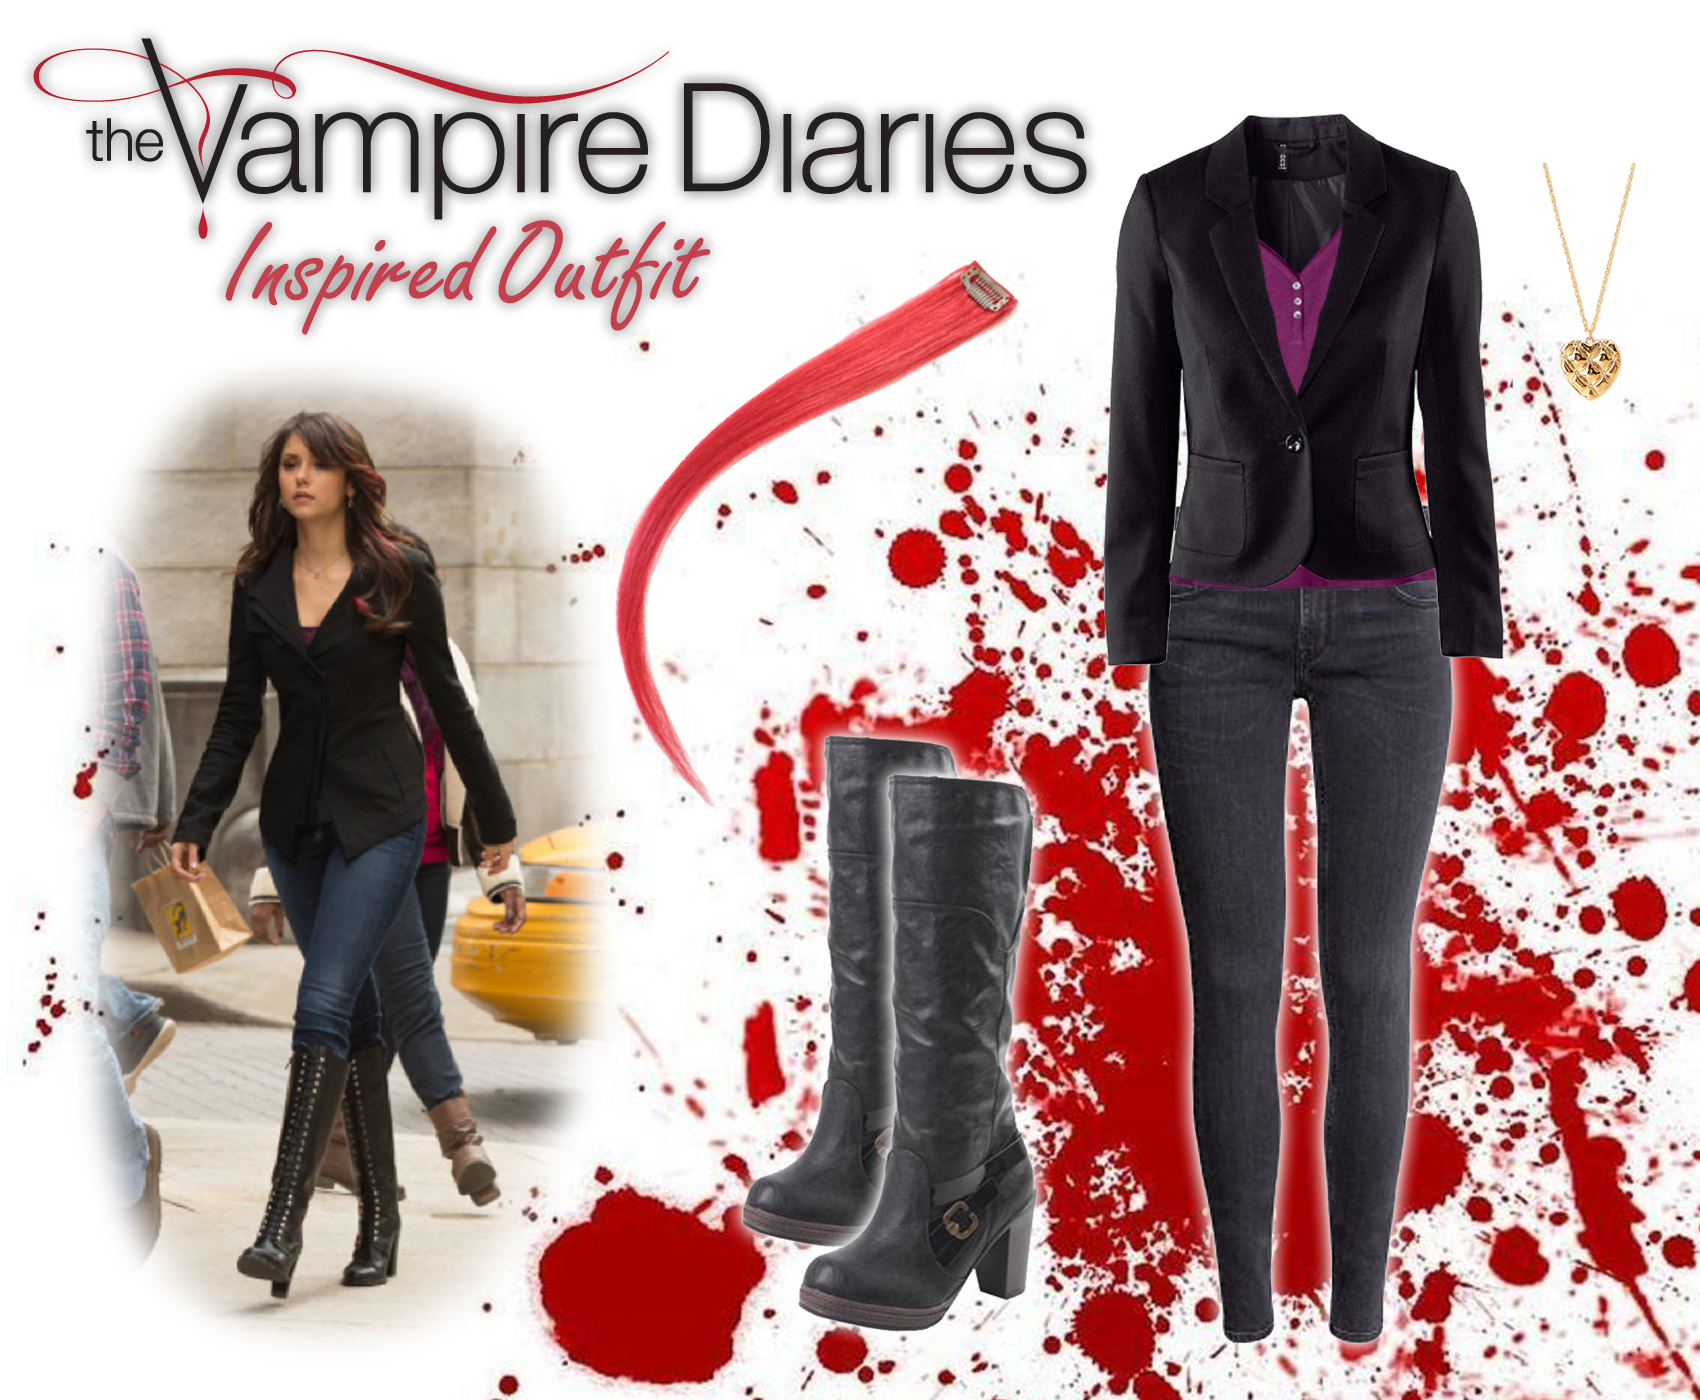 TVD Outfit